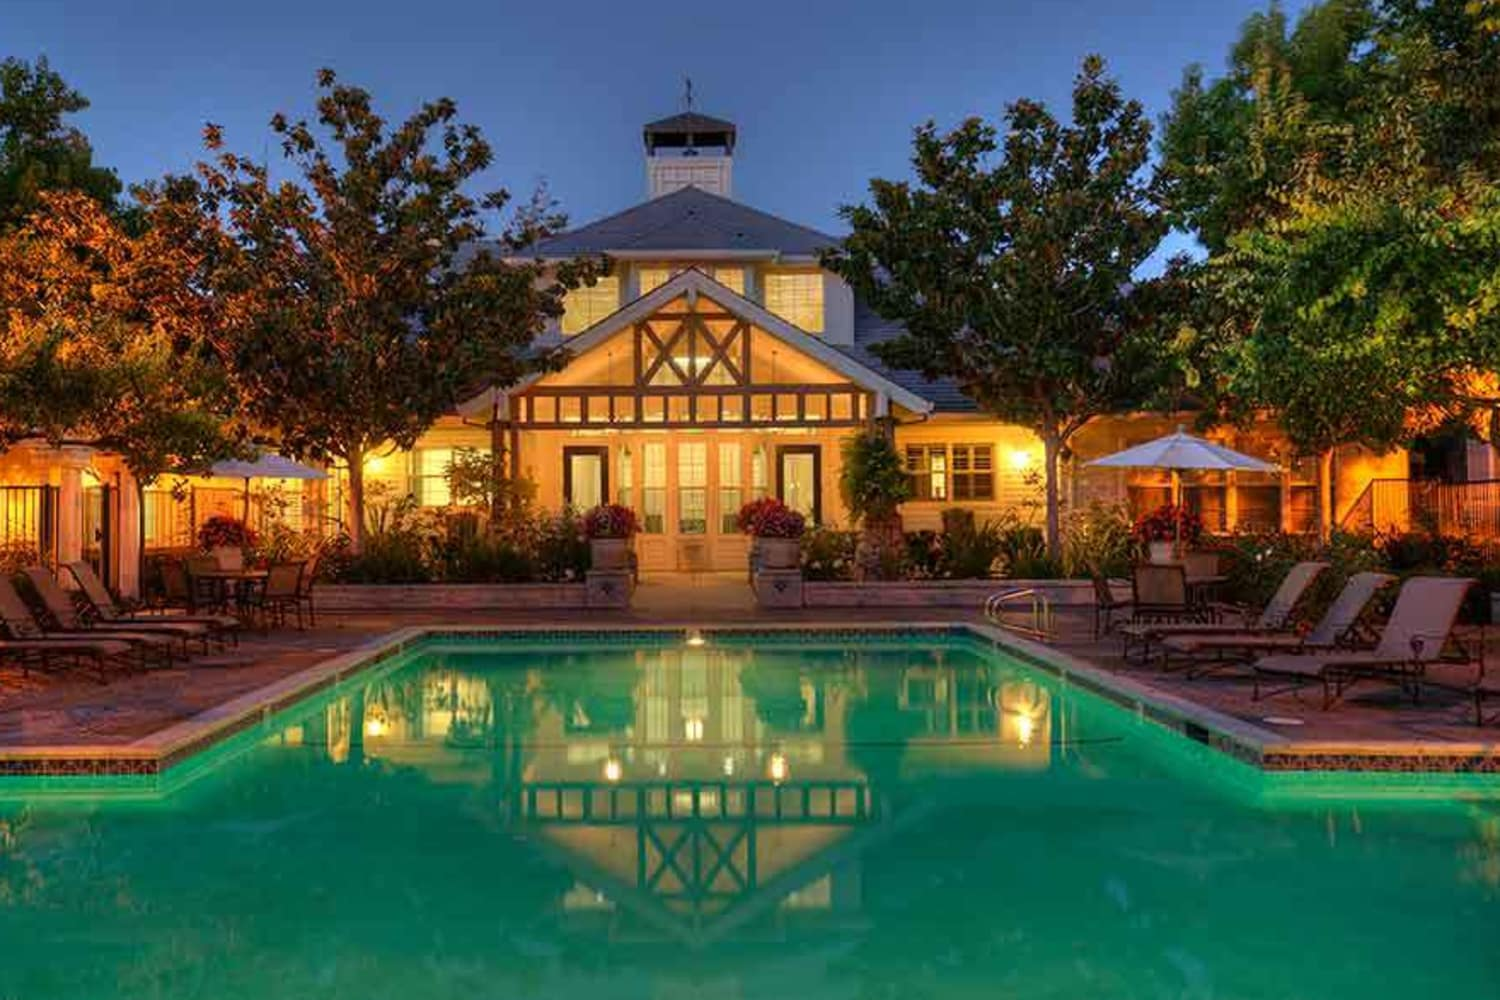 Resort style pool at Nantucket Apartments in Santa Clara, California